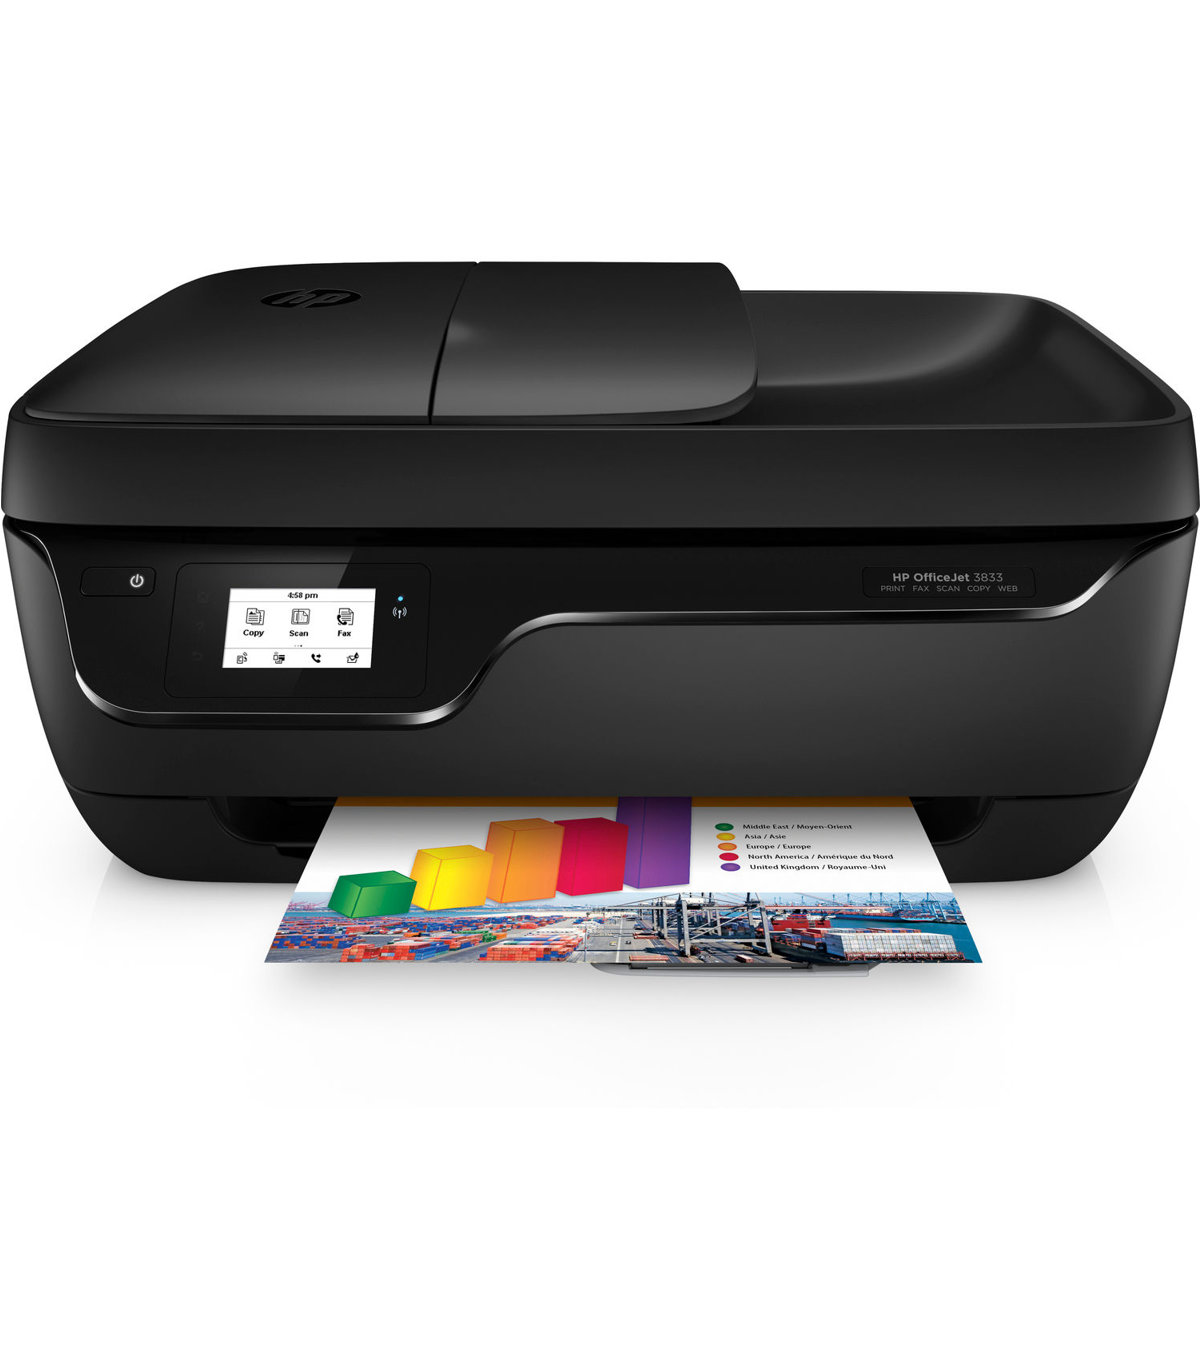 HP OfficeJet 3830 All in One Wireless Printer with Mobile Printing K7V40A  by Office Depot & OfficeMax